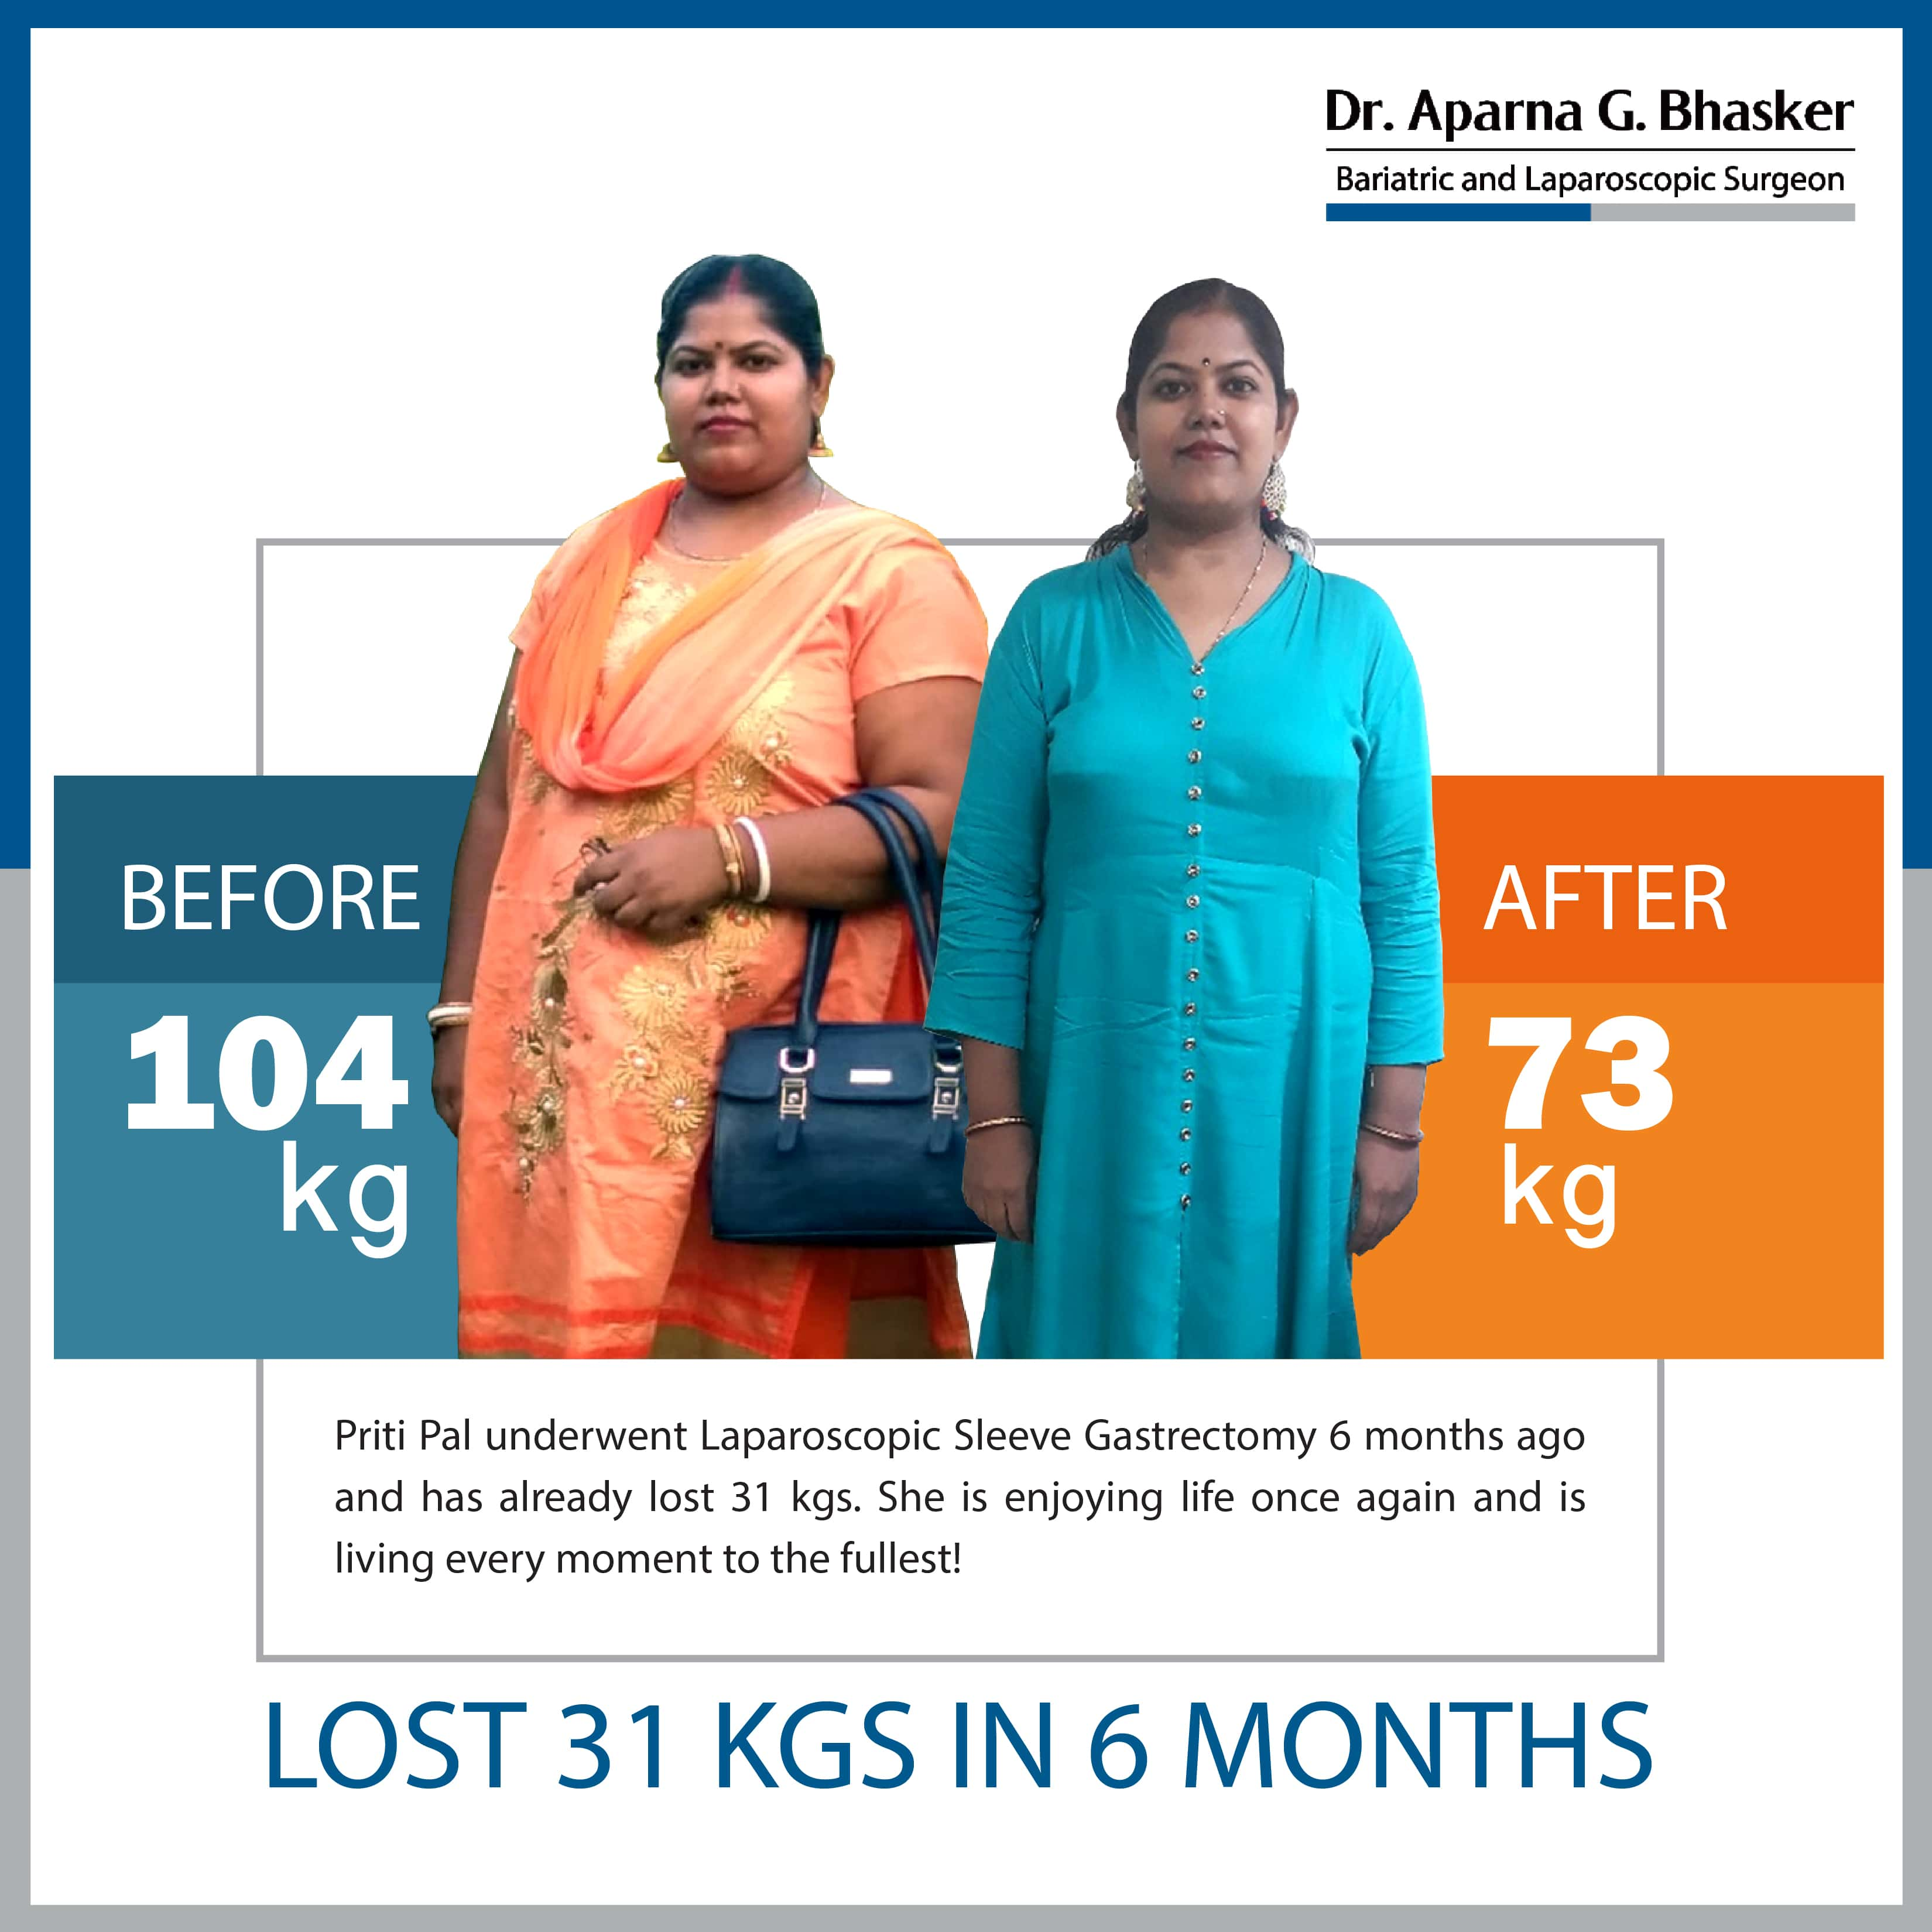 best intragastric balloon bariatric surgery and weight loss surgery in mumbai india before after photos (5)-min